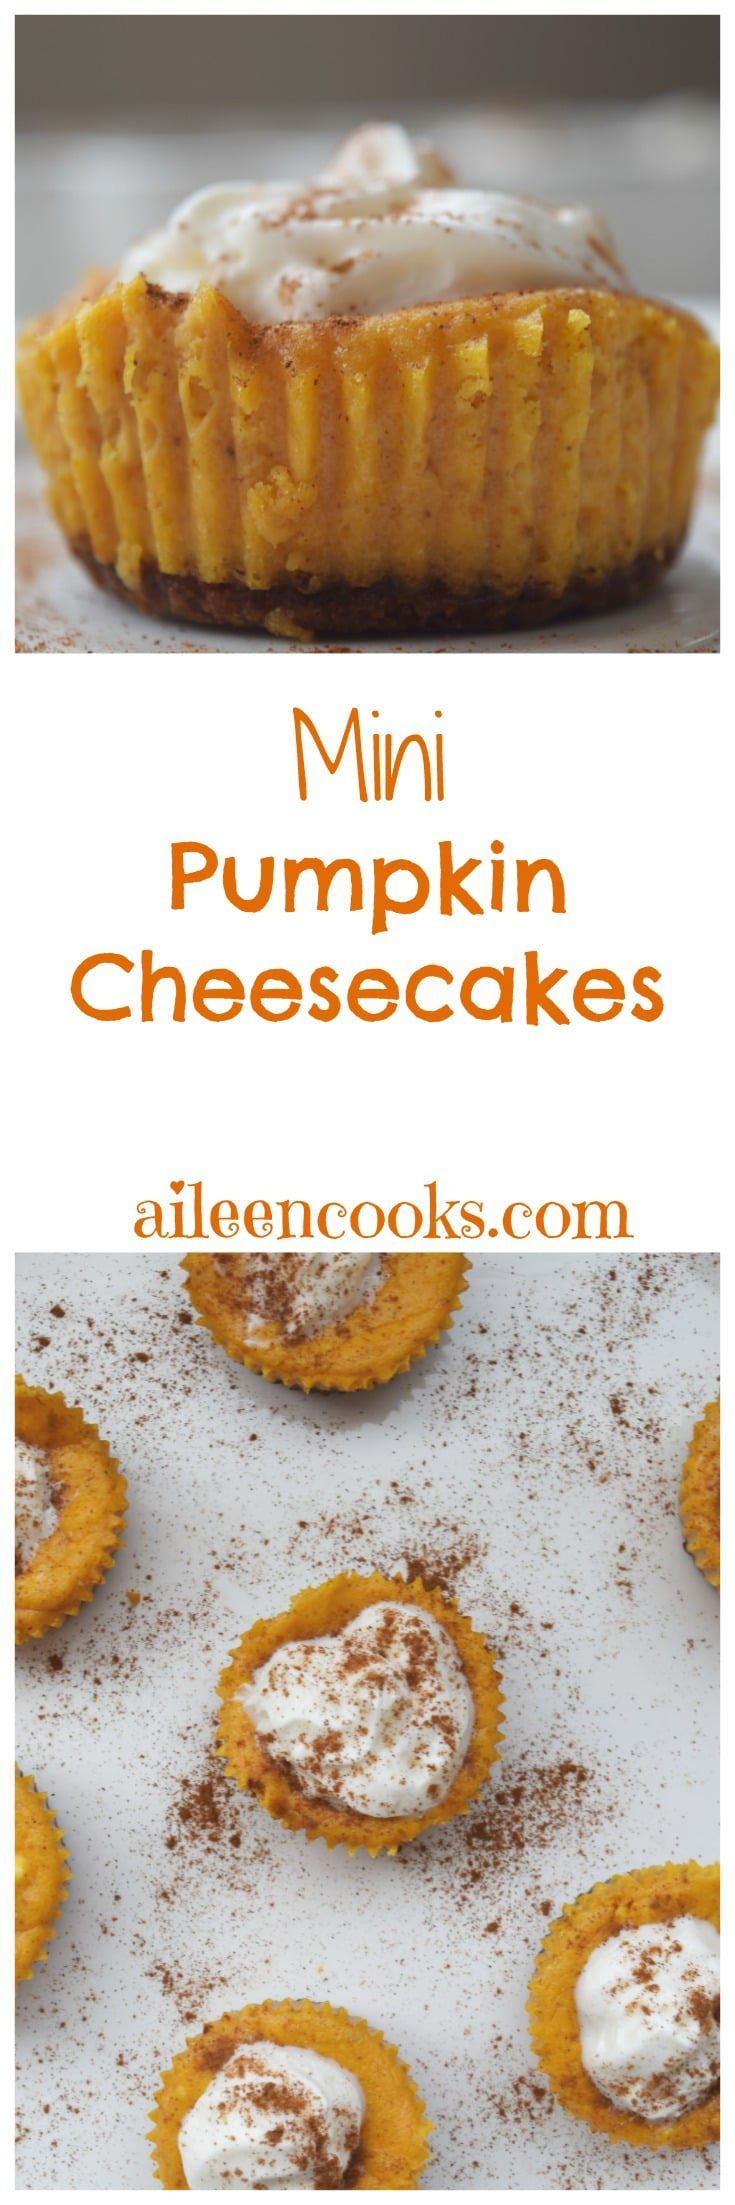 Mini Pumpkin Cheesecakes - they are cheesecakes in cupcake form! The perfect fall dessert.